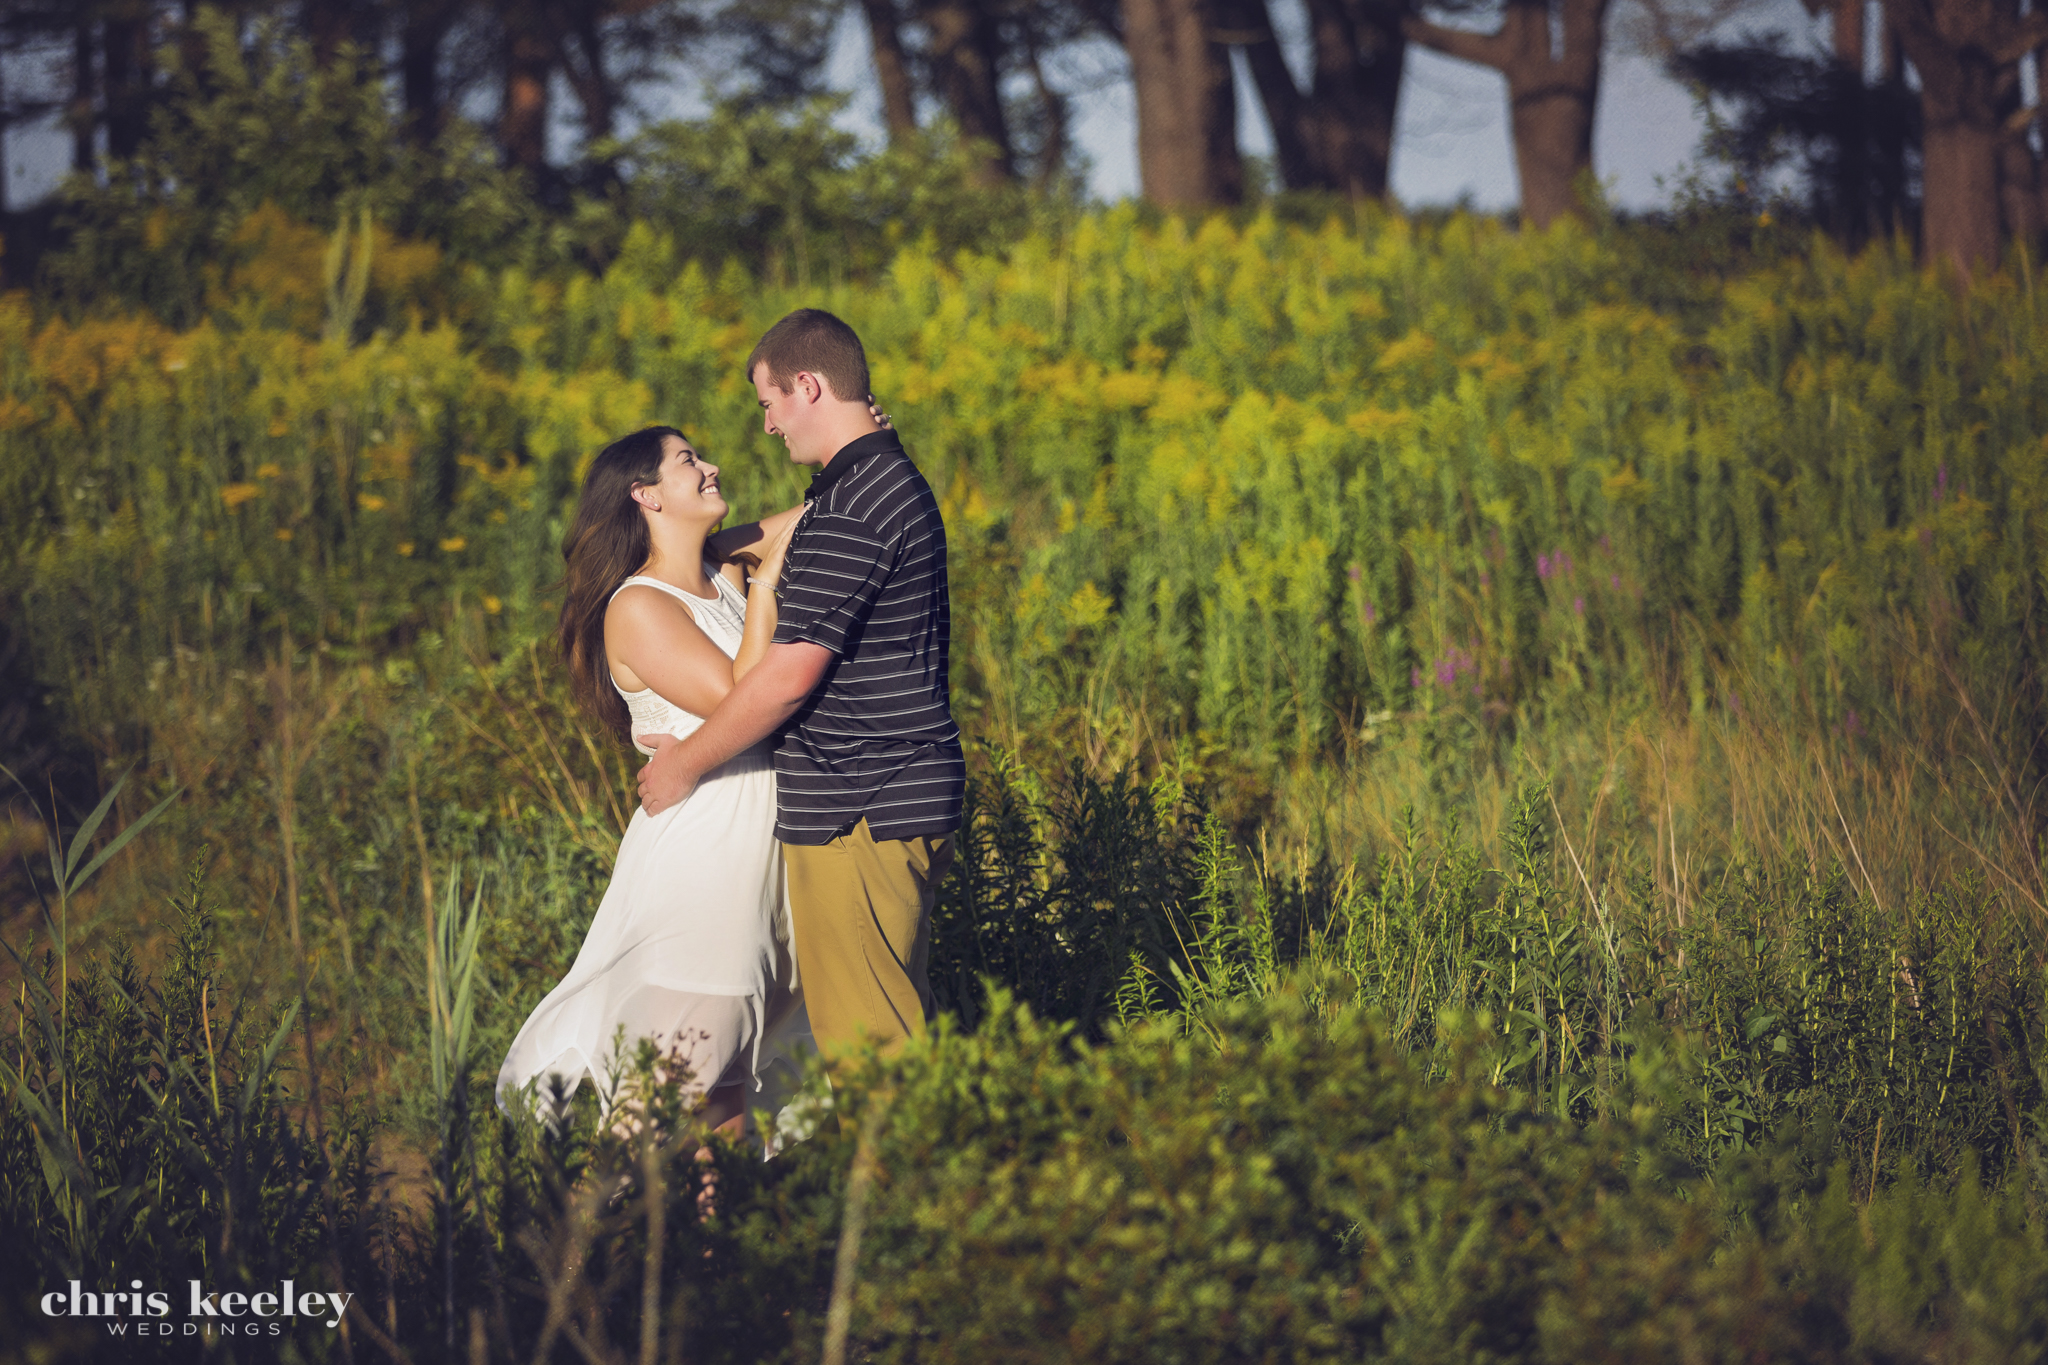 03-engagement-wedding-pictures-rye-new-hampshire-chris-keeley-weddings.jpg